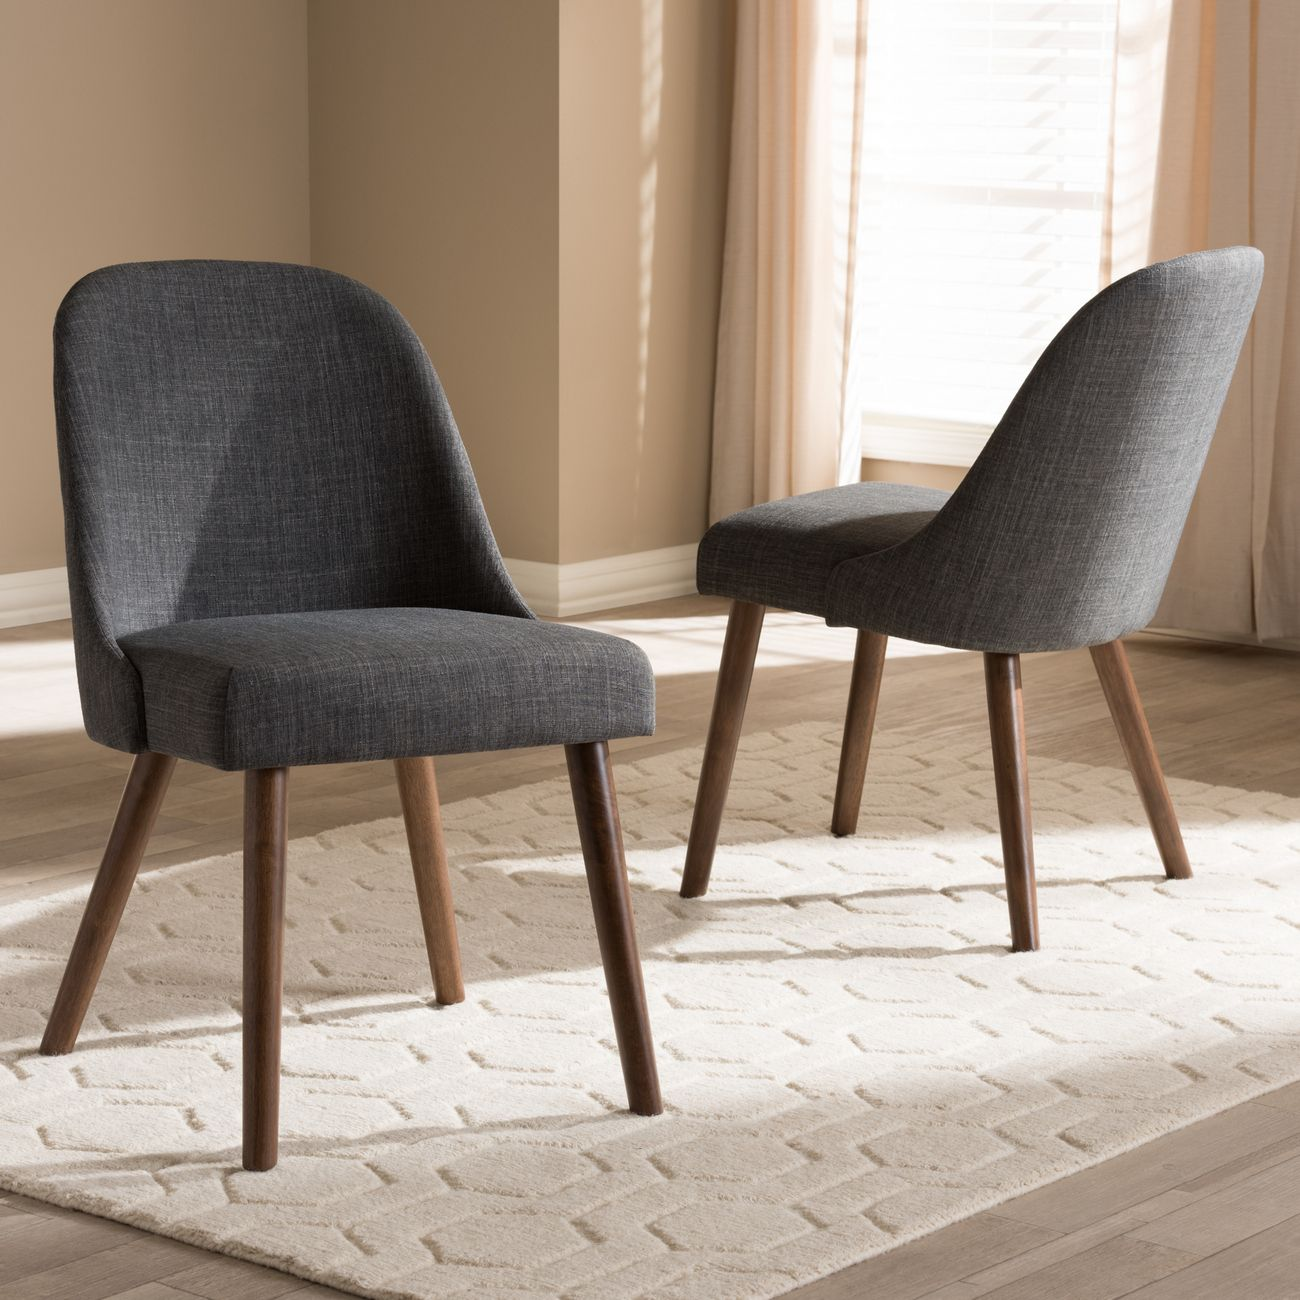 Pin By Totally Furniture On Dining Room Upholstered Dining Chairs Dining Chairs Dining Room Chairs